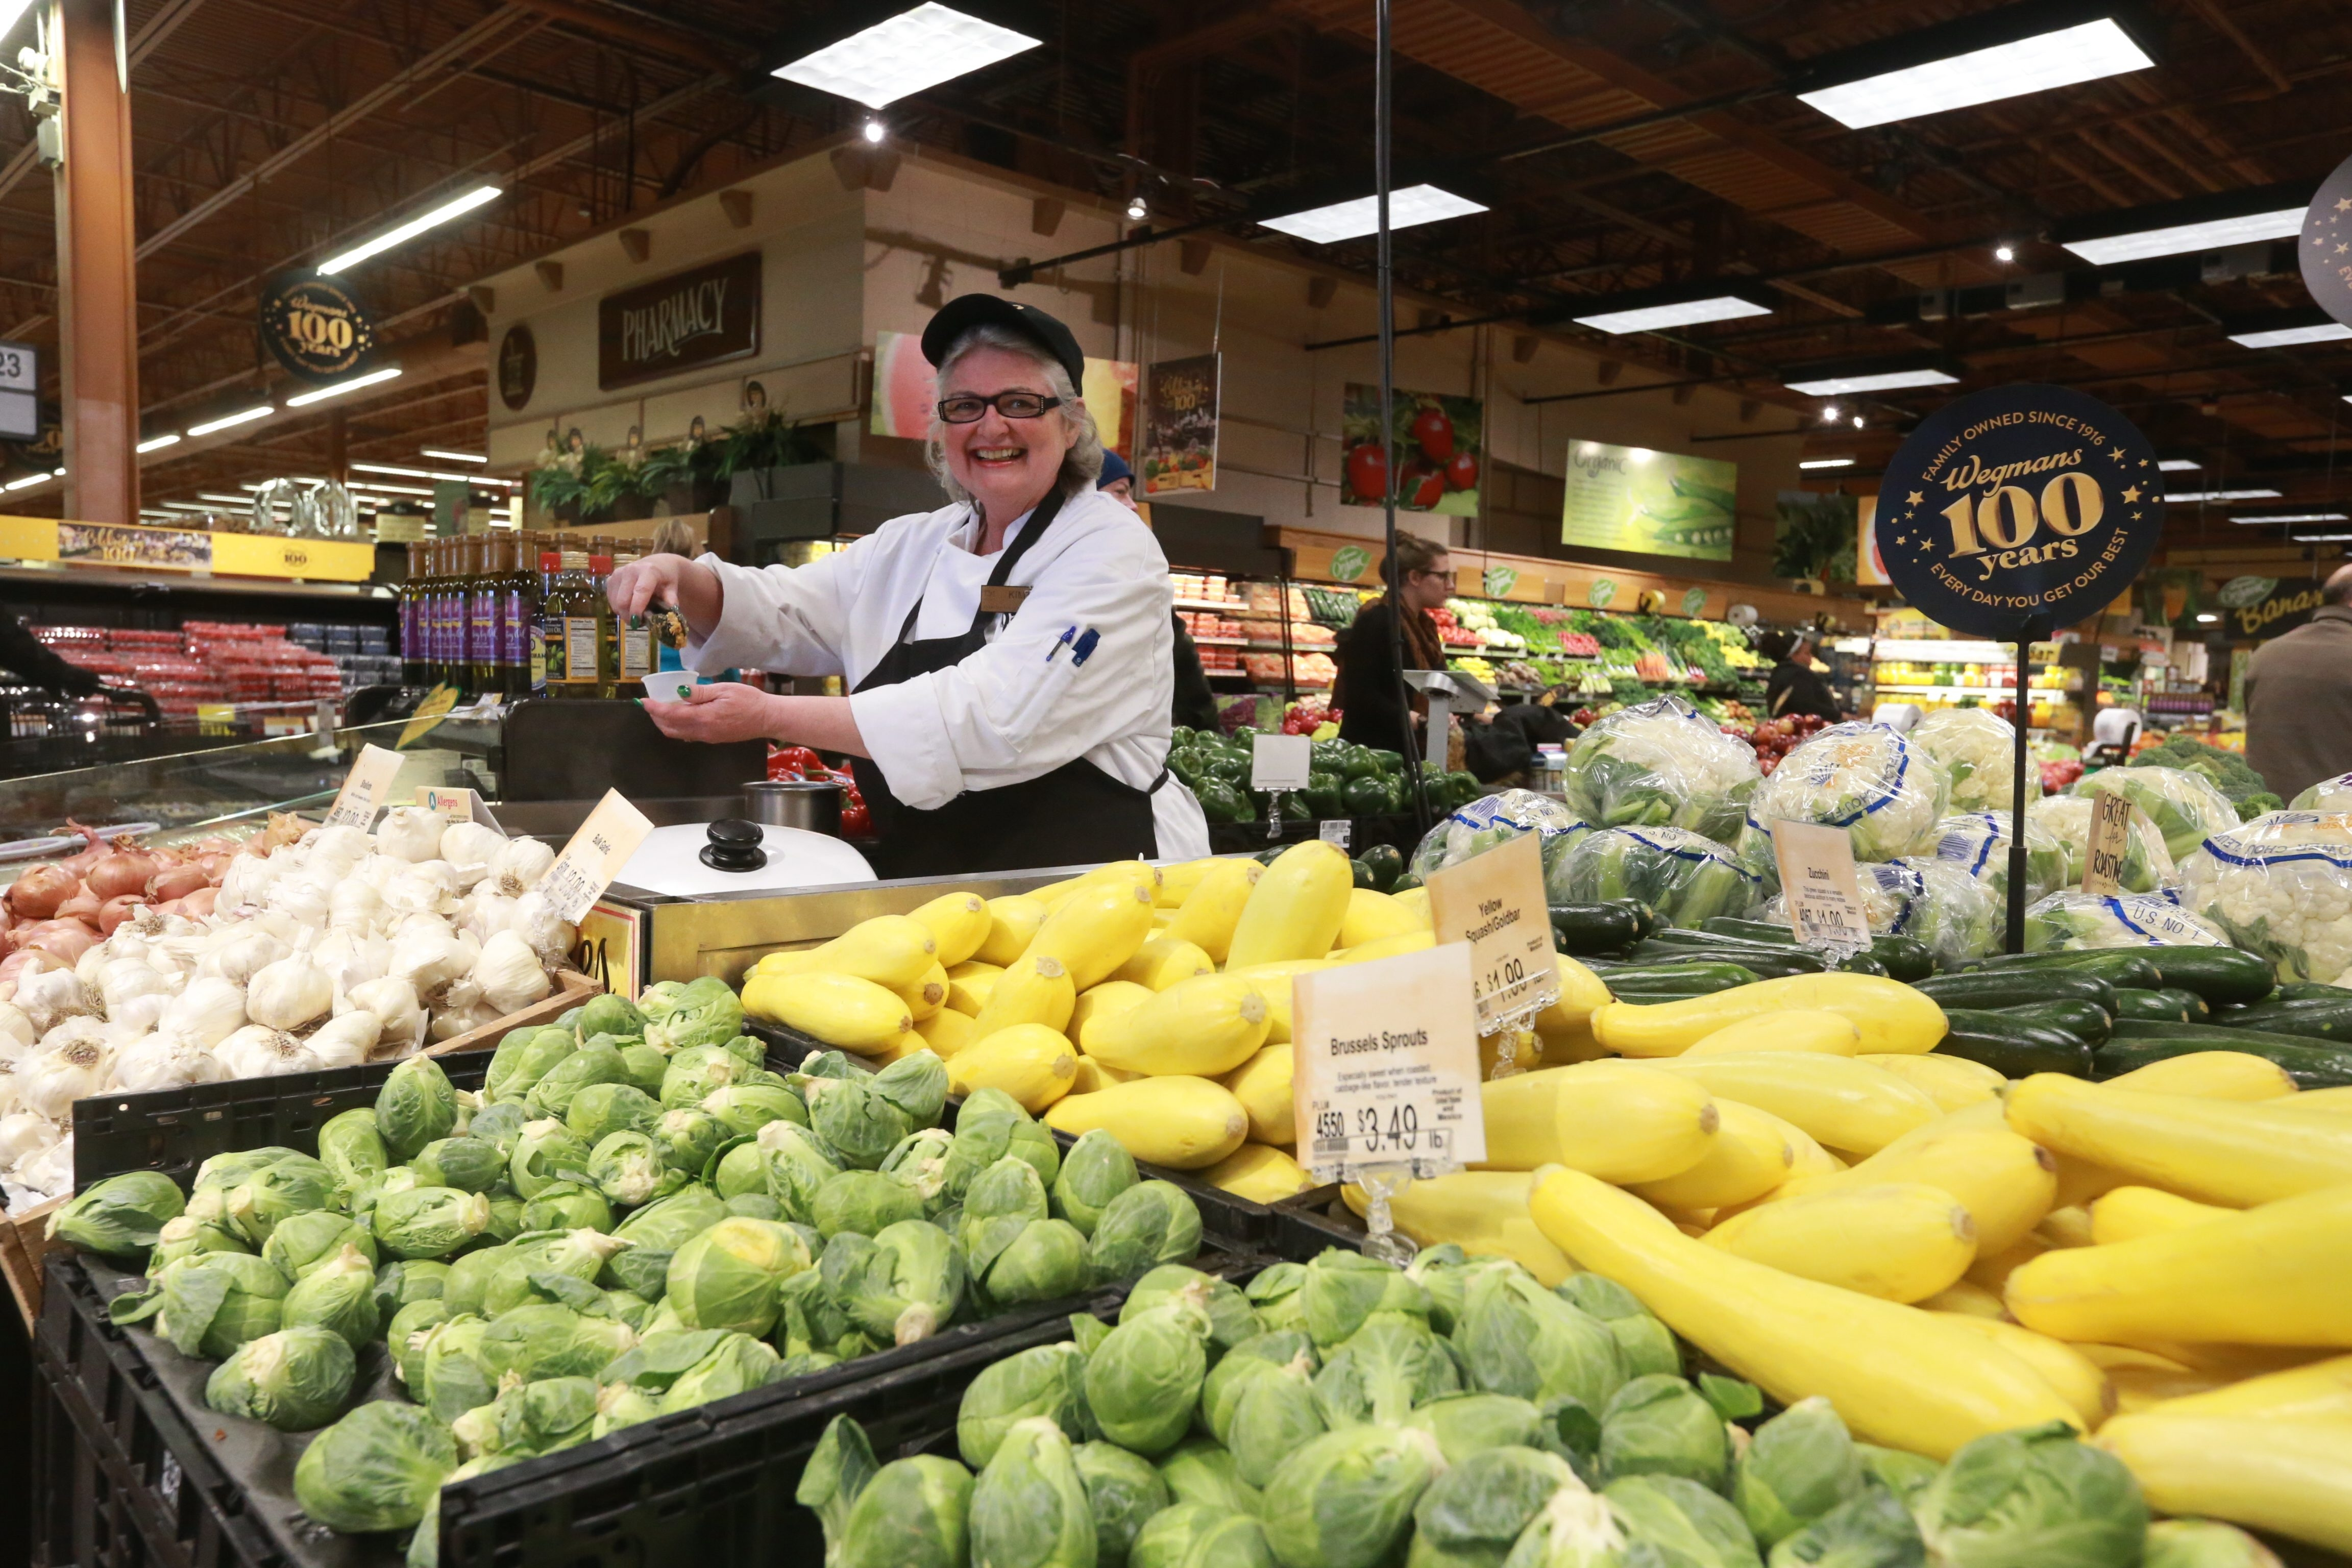 Kim Durak, a Wegmans produce worker at Amherst Street store, reflects pride in chain's No.4 rating on national list.